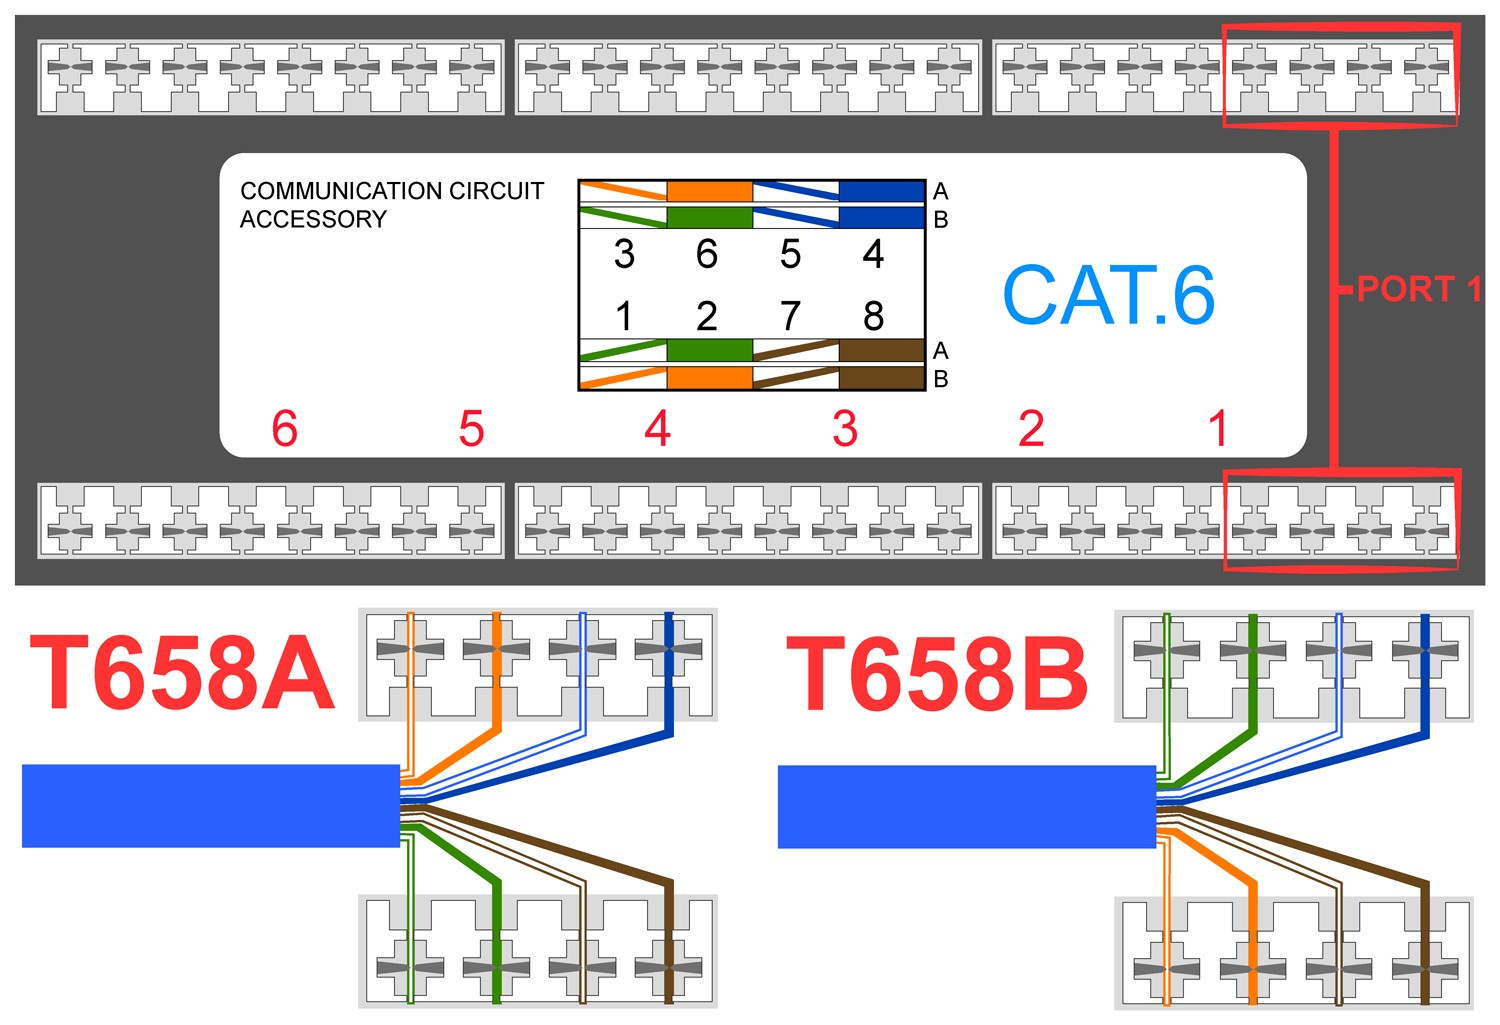 rj45 wiring diagram cat5e awesome wiring diagram image rh mainetreasurechest com Cat 5 Network Wiring Diagram T568B Wiring Diagram